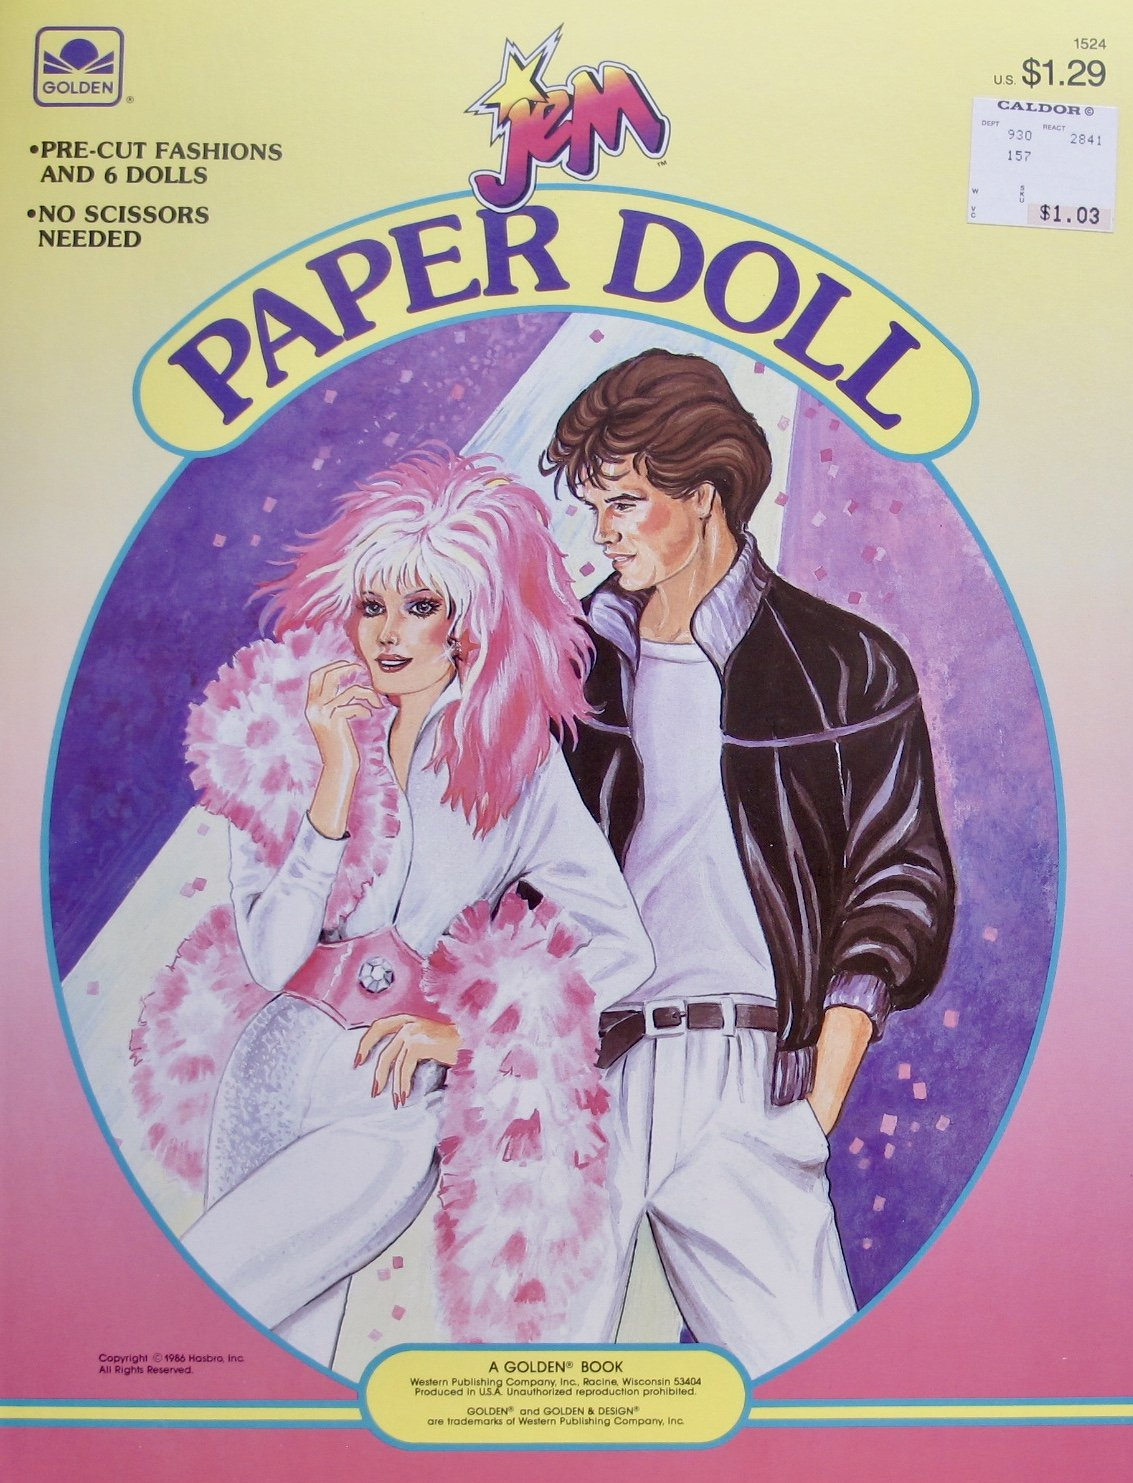 Golden JEM PAPER DOLL BOOK (UNCUT) w 6 Card Stock DOLLS & Pre-Cut FASHIONS (1986 Hasbro)